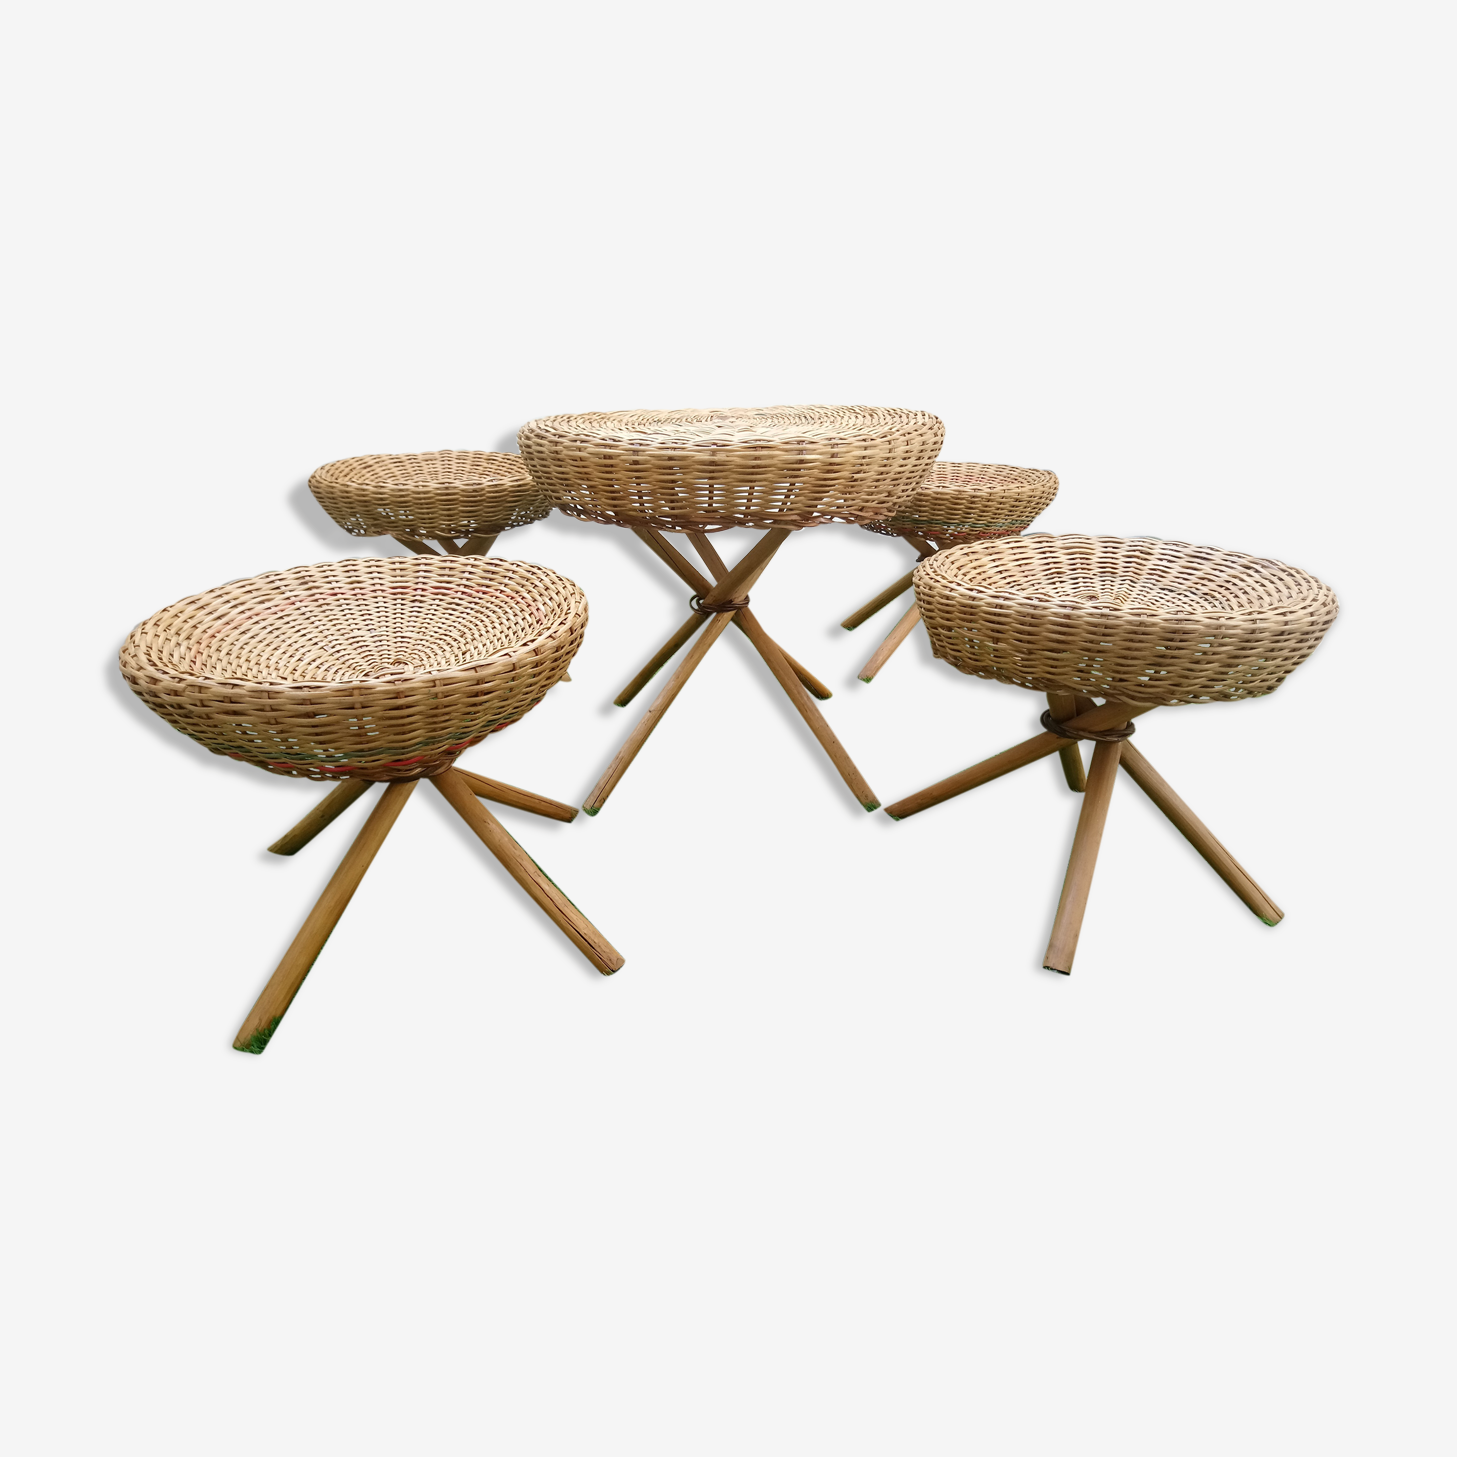 Summer Lounge 4 stools and coffee table Wicker of the 1960s